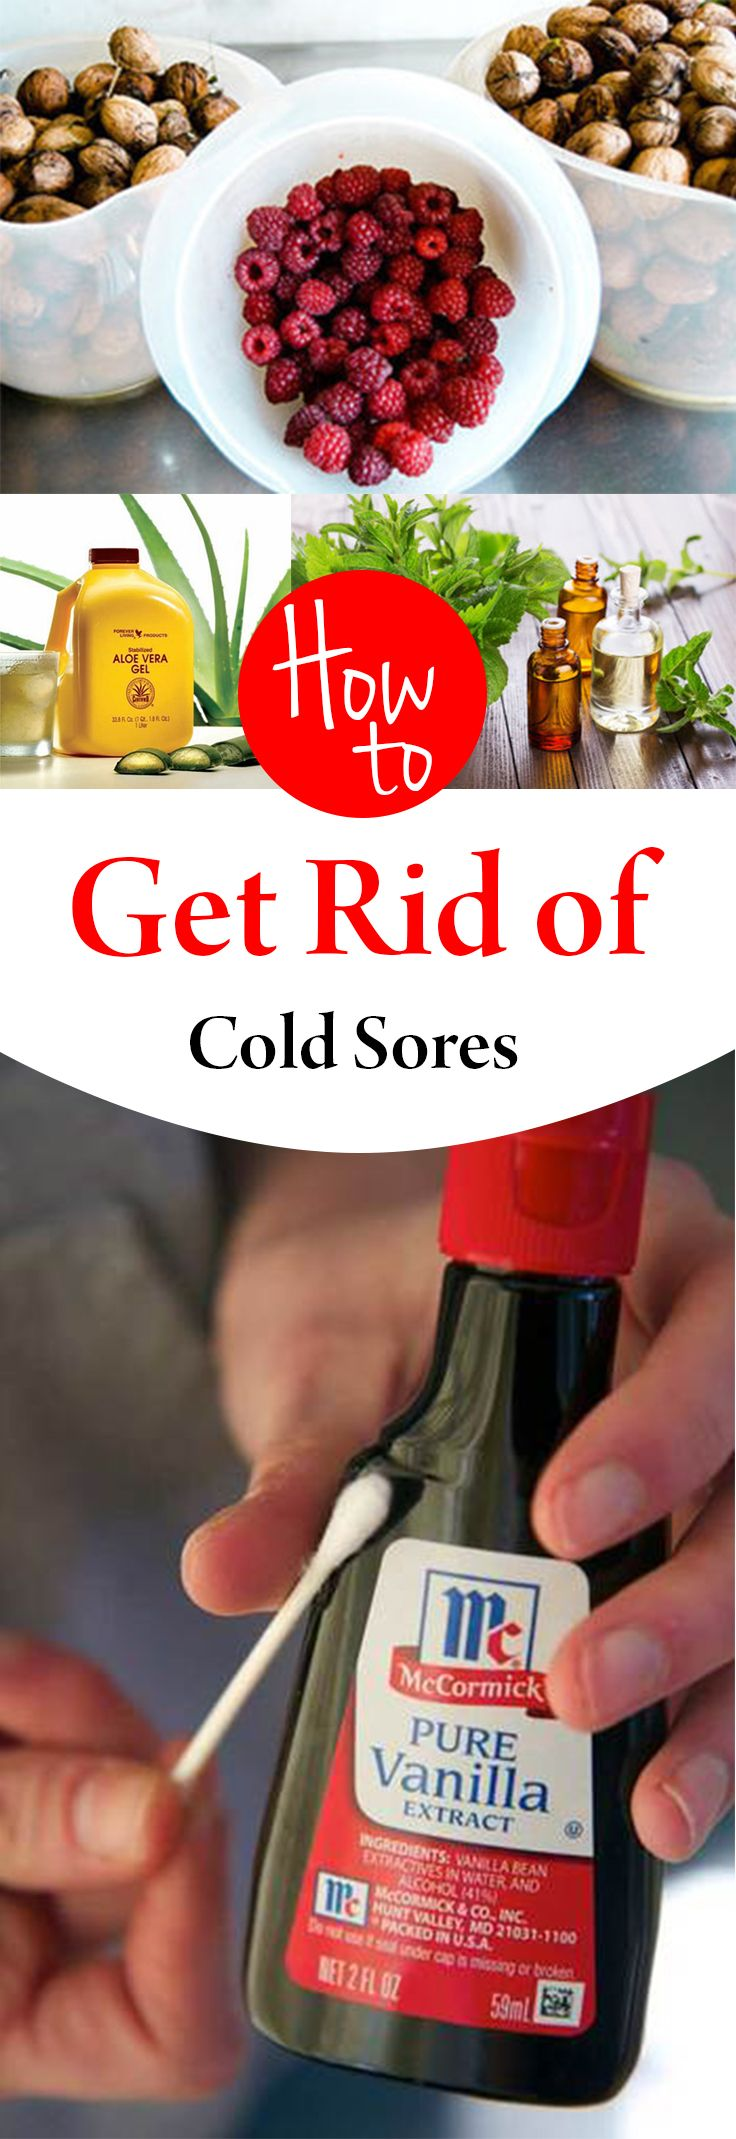 How to Get Rid of Cold Sores - some good ideas in this - I'll have to try them next time